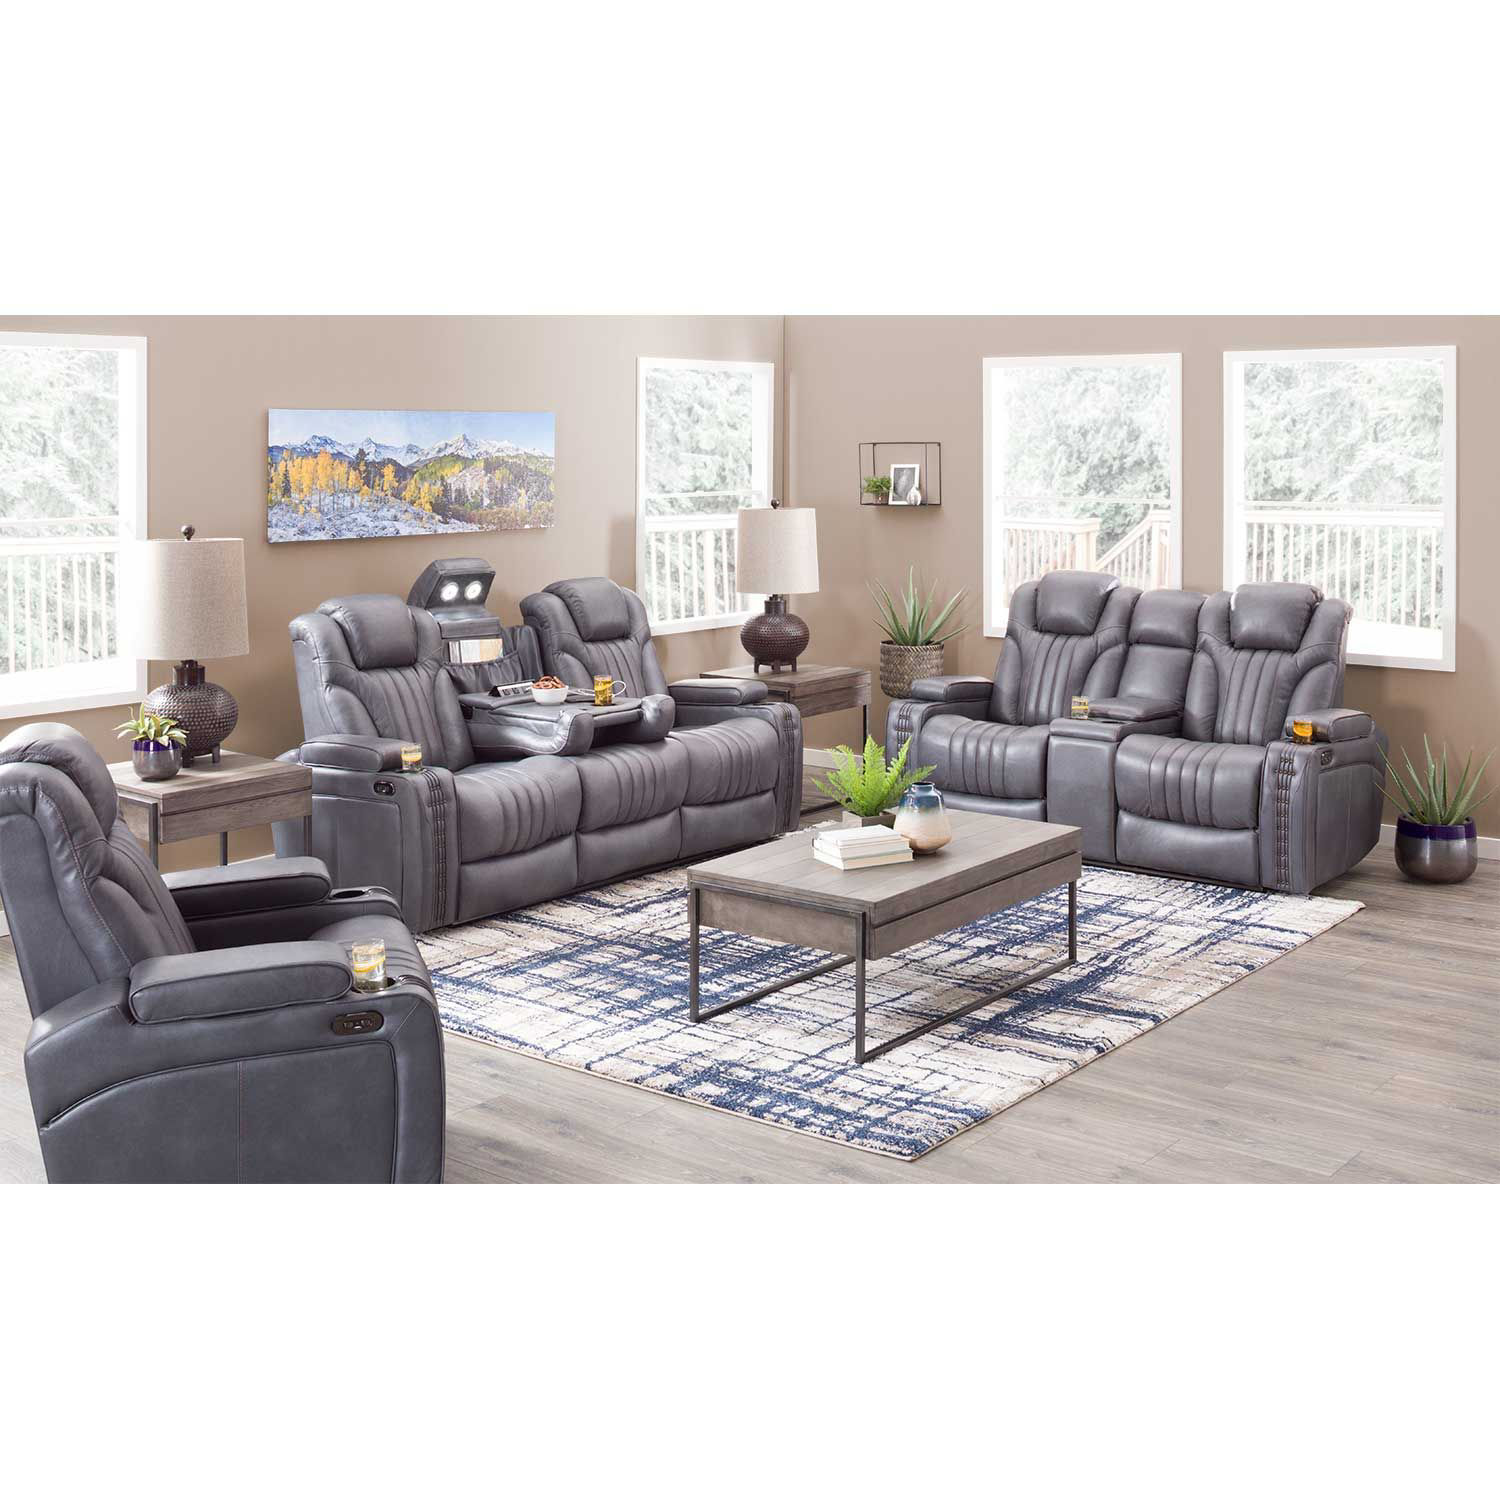 Picture of Outsider Gunmetal Gray Leather Power Recliner with Power Adjustable Headrest